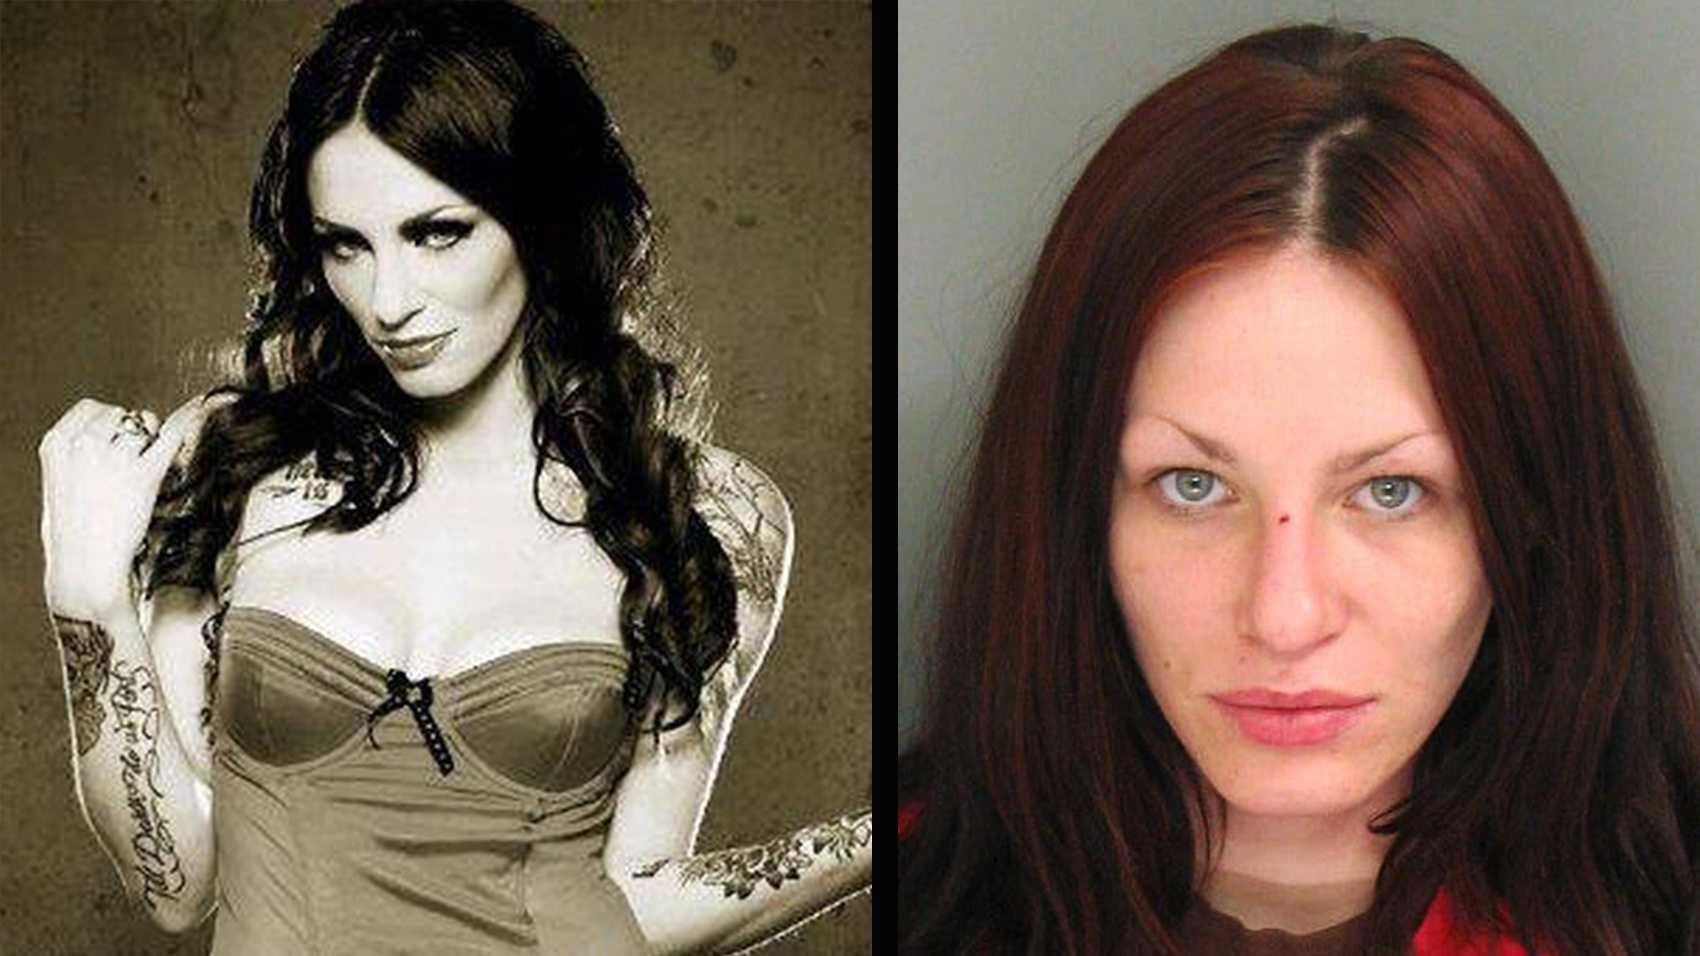 Alix Tichelman is seen in a Facebook photo, left, and in a jail mug shot, right.